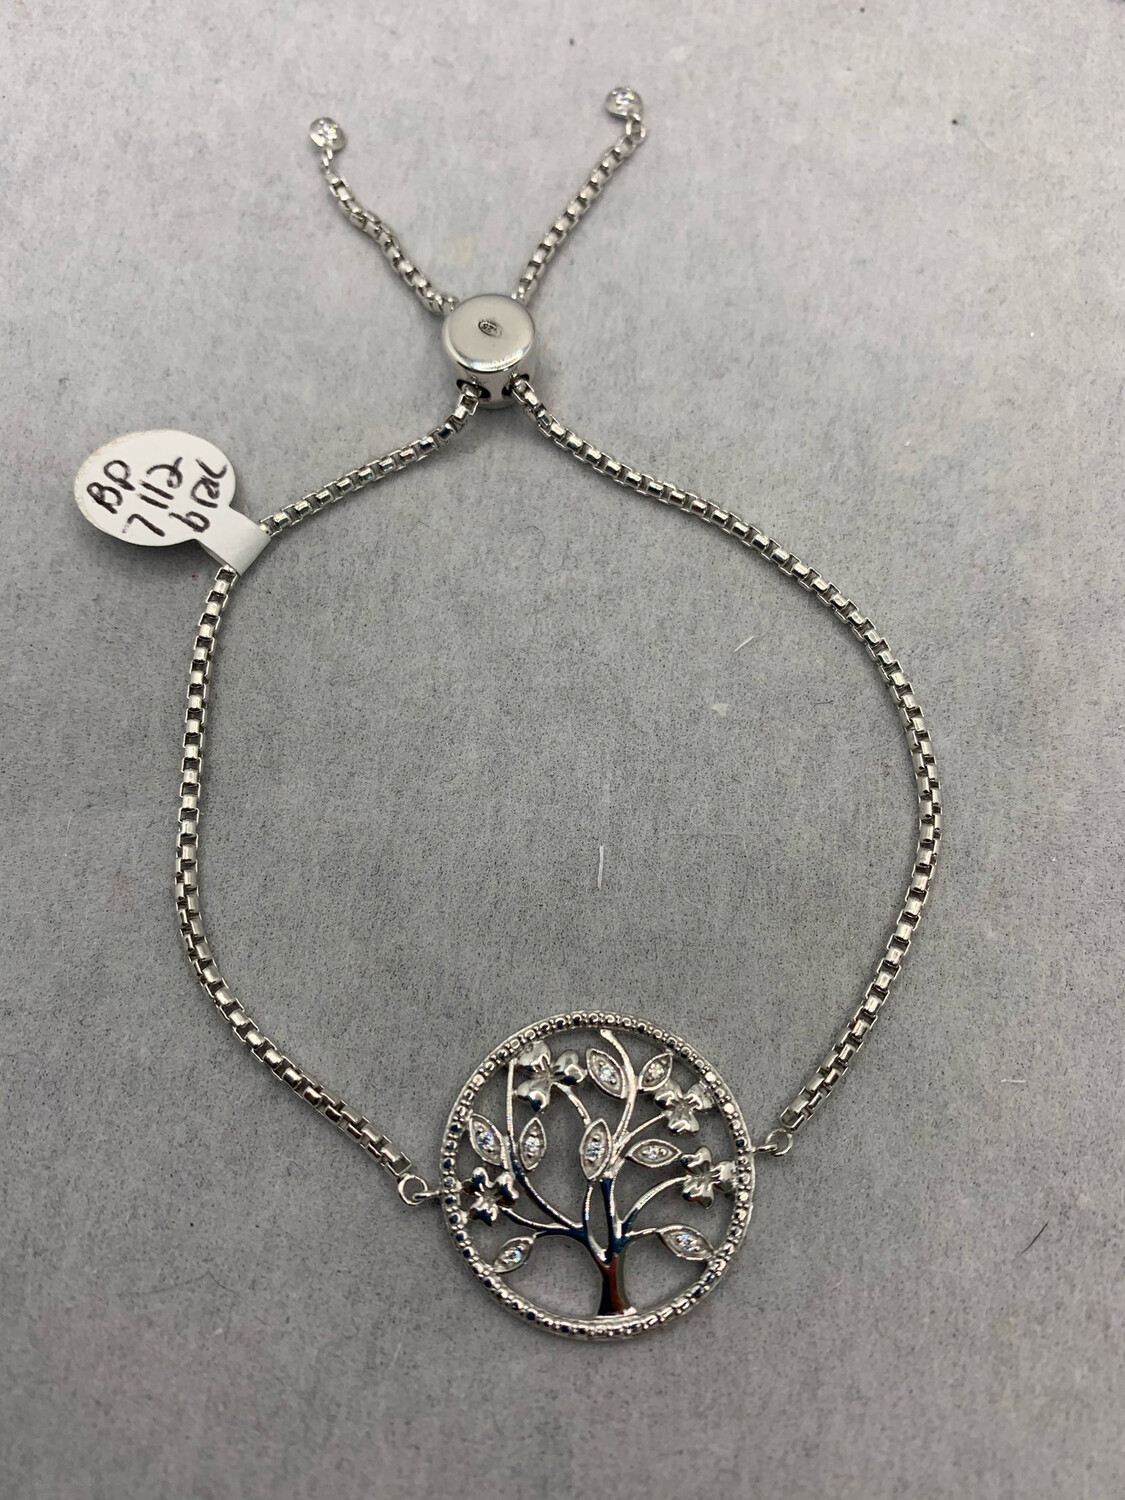 Sterling Silver Tree Bracelet With Bolo Clasp